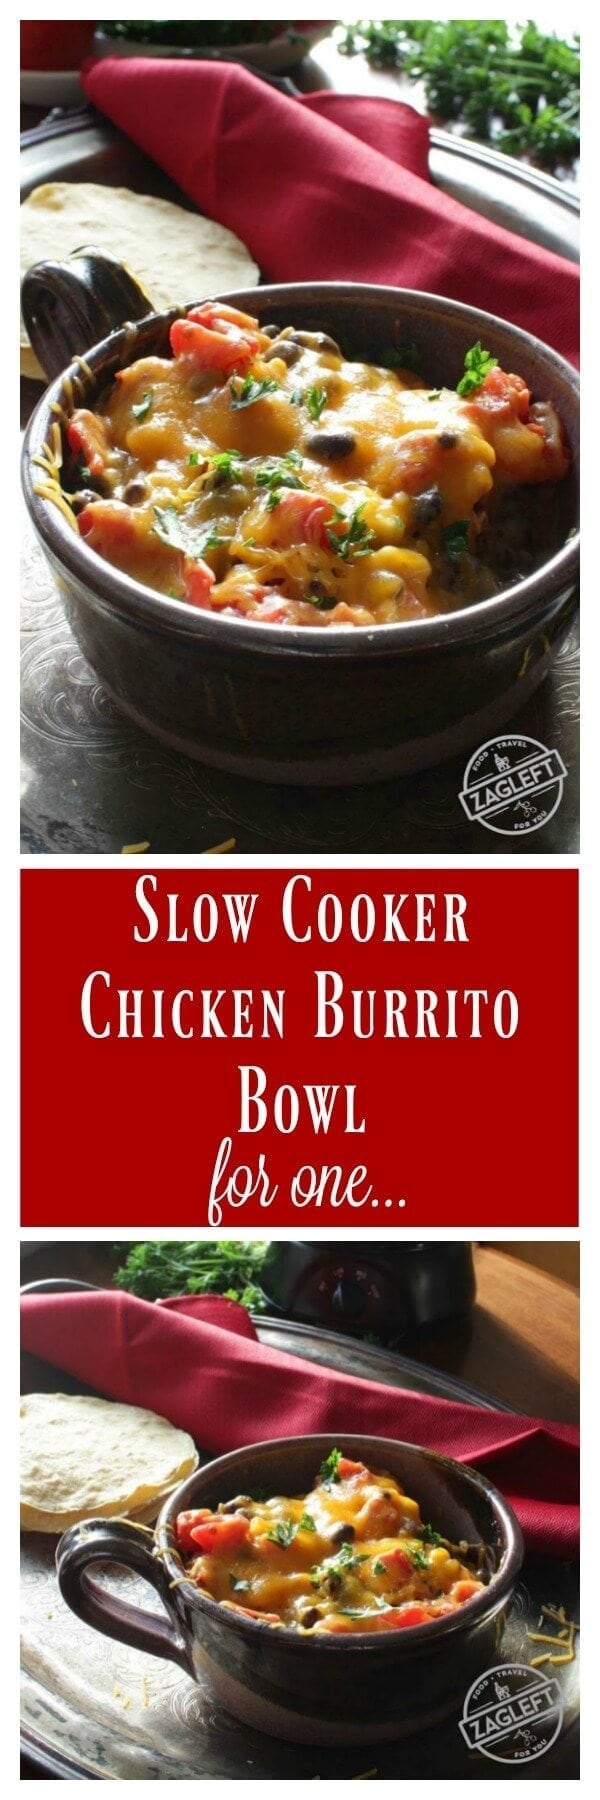 Slow Cooker Chicken Burrito Bowl For One, made with one chicken breast, chili-spiced beans, corn and rice. A simple, healthy and flavorful one-pot meal.